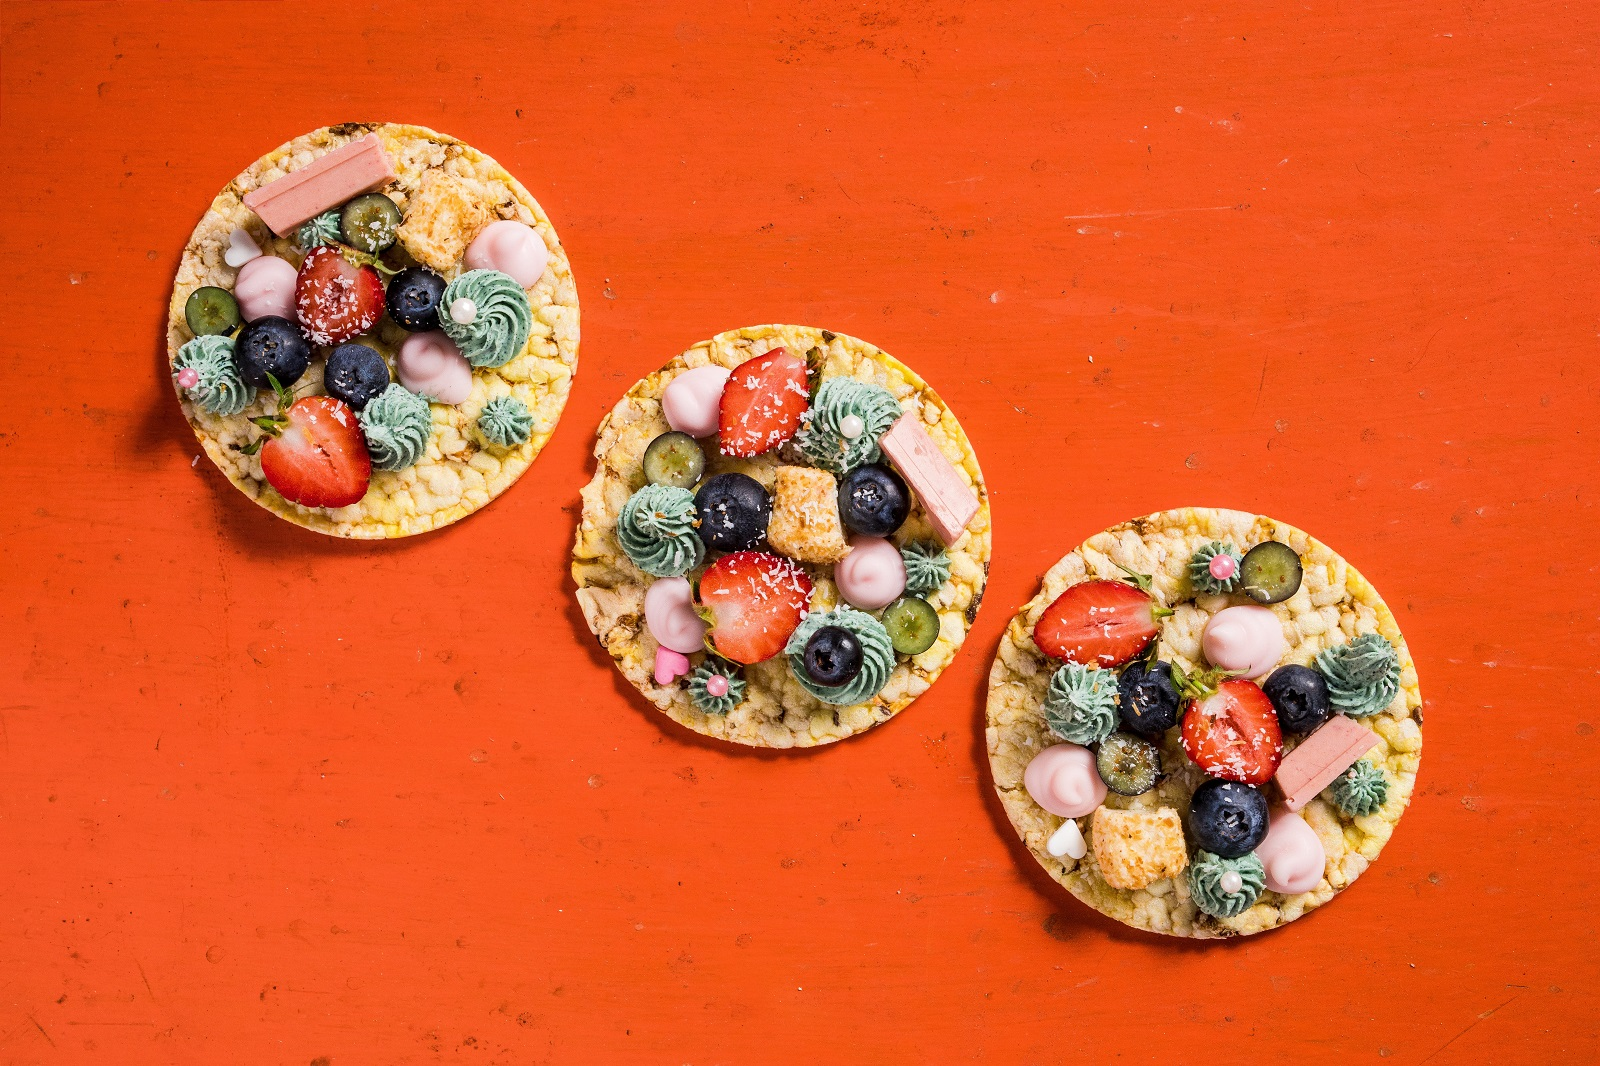 CORN THINS slices with Creamed Cheese, Strawberries, Blueberries & Yoghurt drops